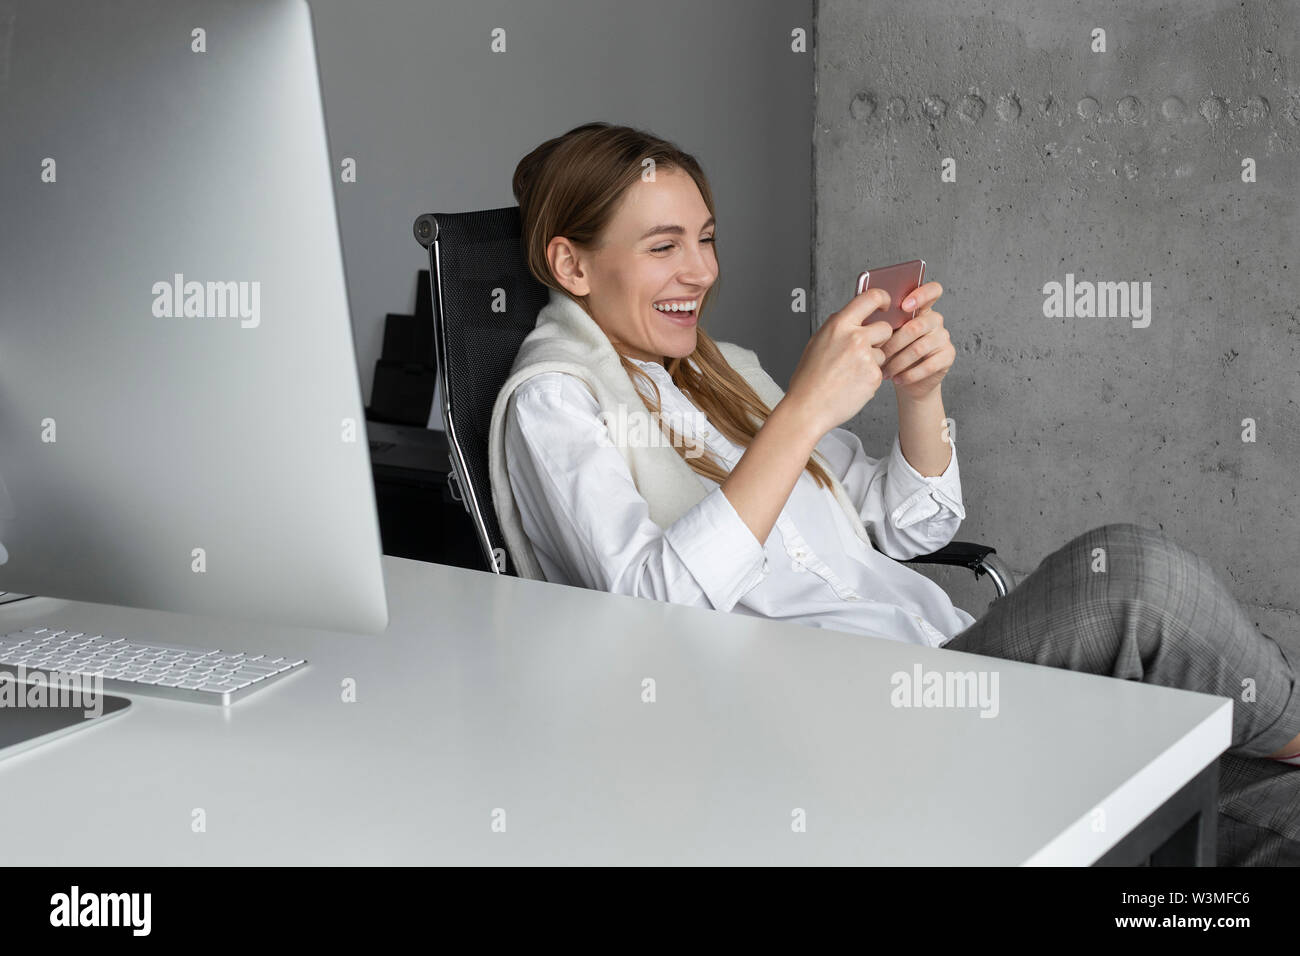 Laughing businesswoman using smartphone at desk - Stock Image